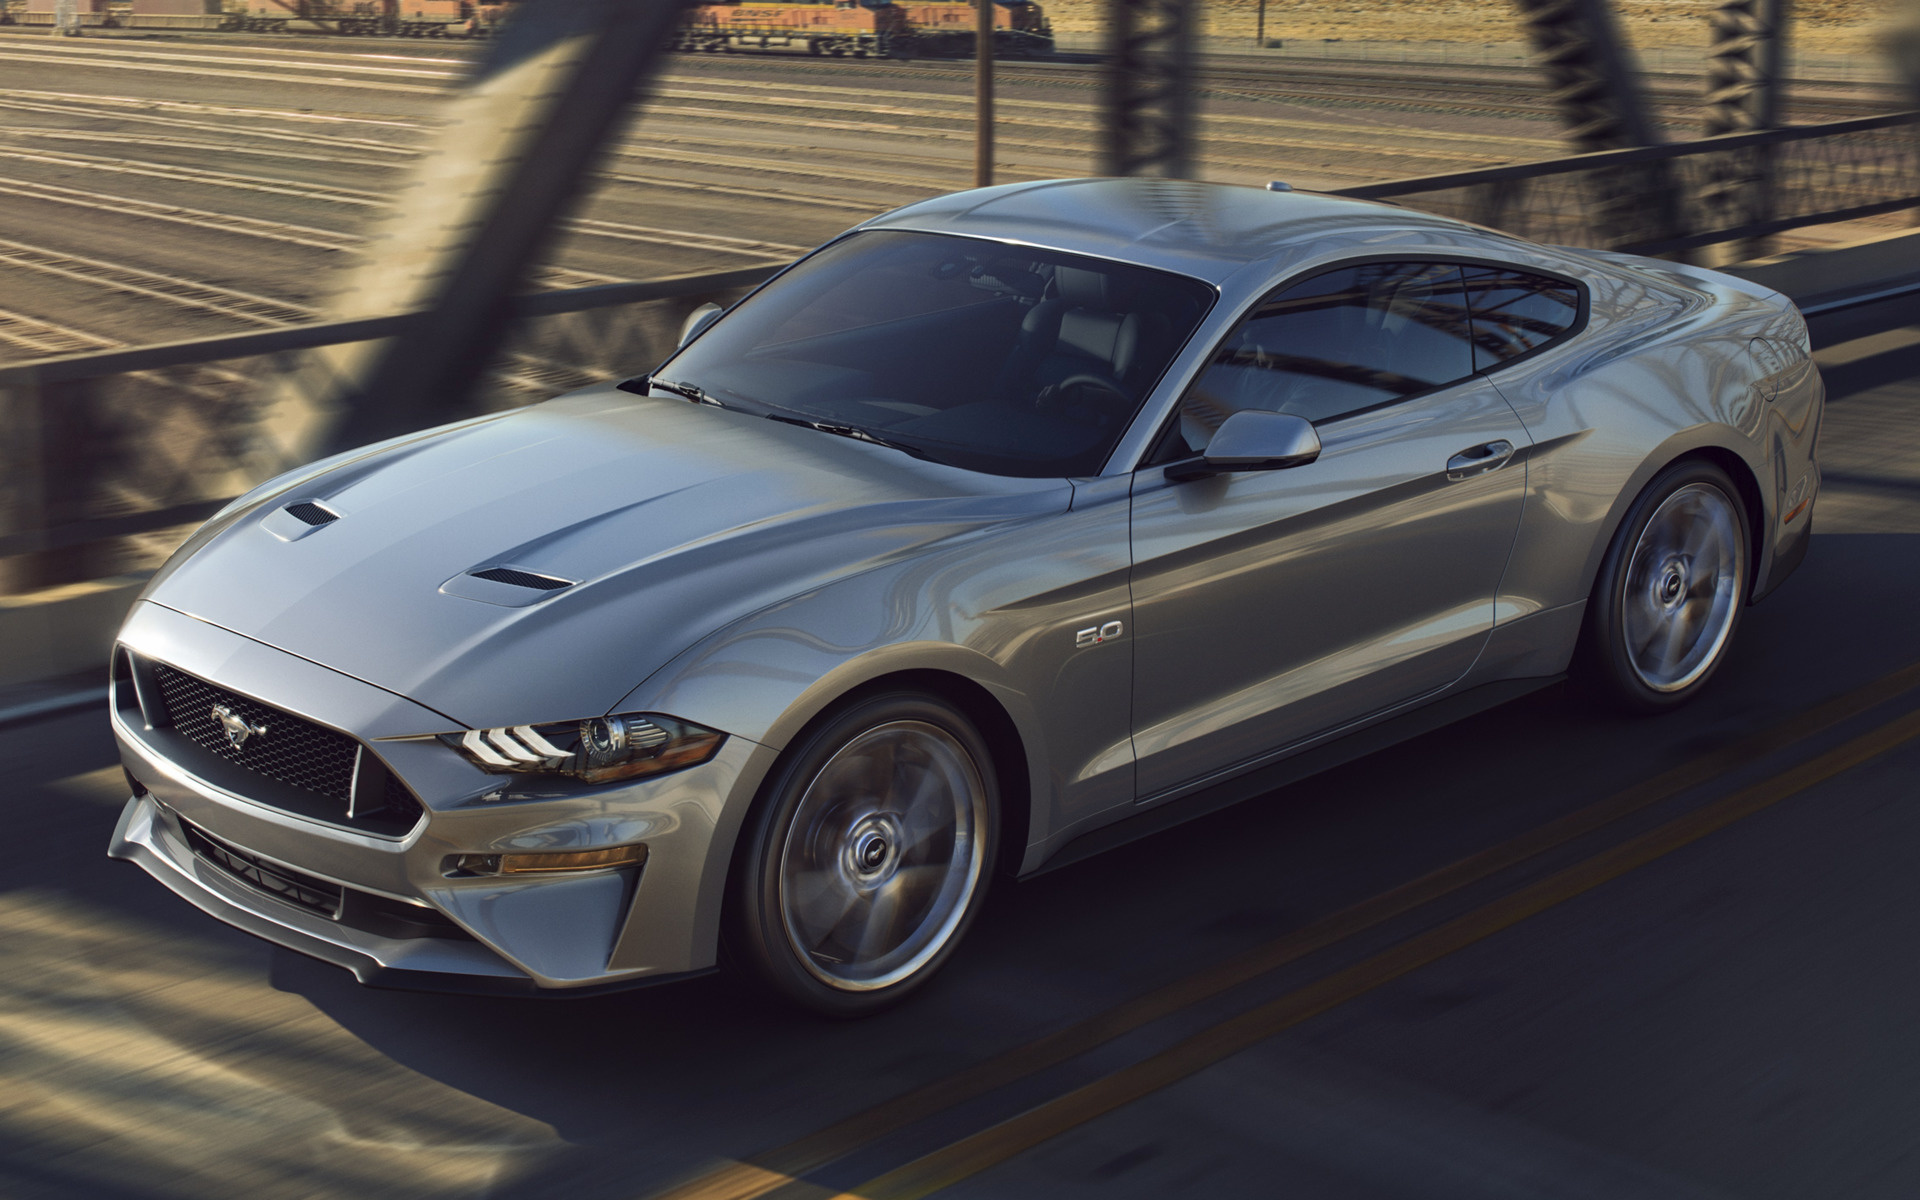 1920x1200 - Ford Mustang GT Wallpapers 35